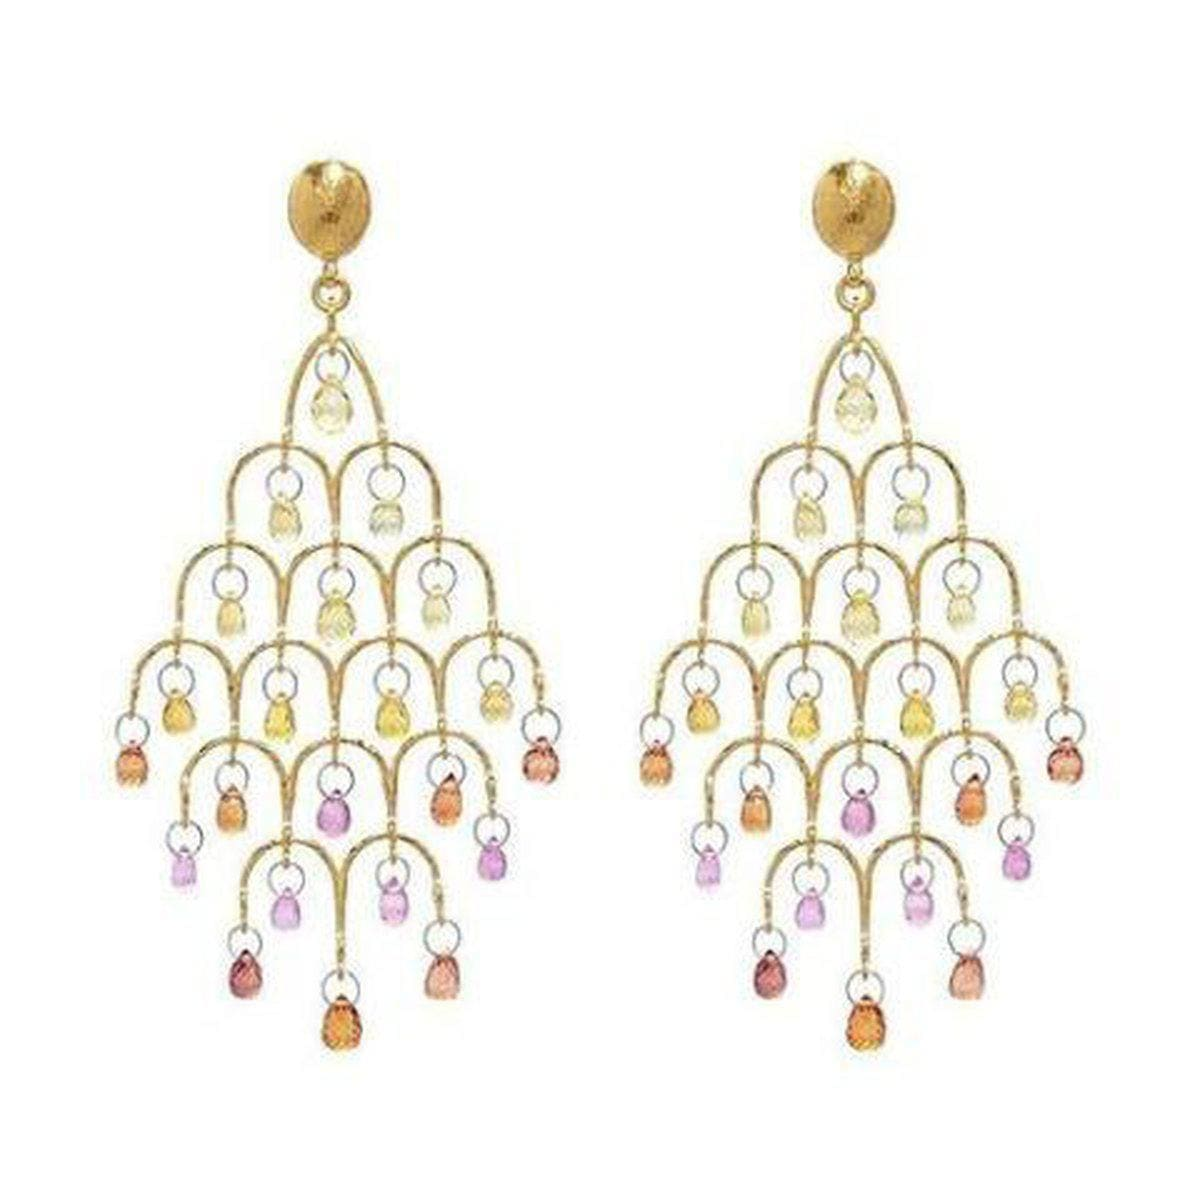 Delicate Hue 24K Gold Sapphire Mix Earrings - E-CHDL-FSB-PO-L-97JT-GURHAN-Renee Taylor Gallery